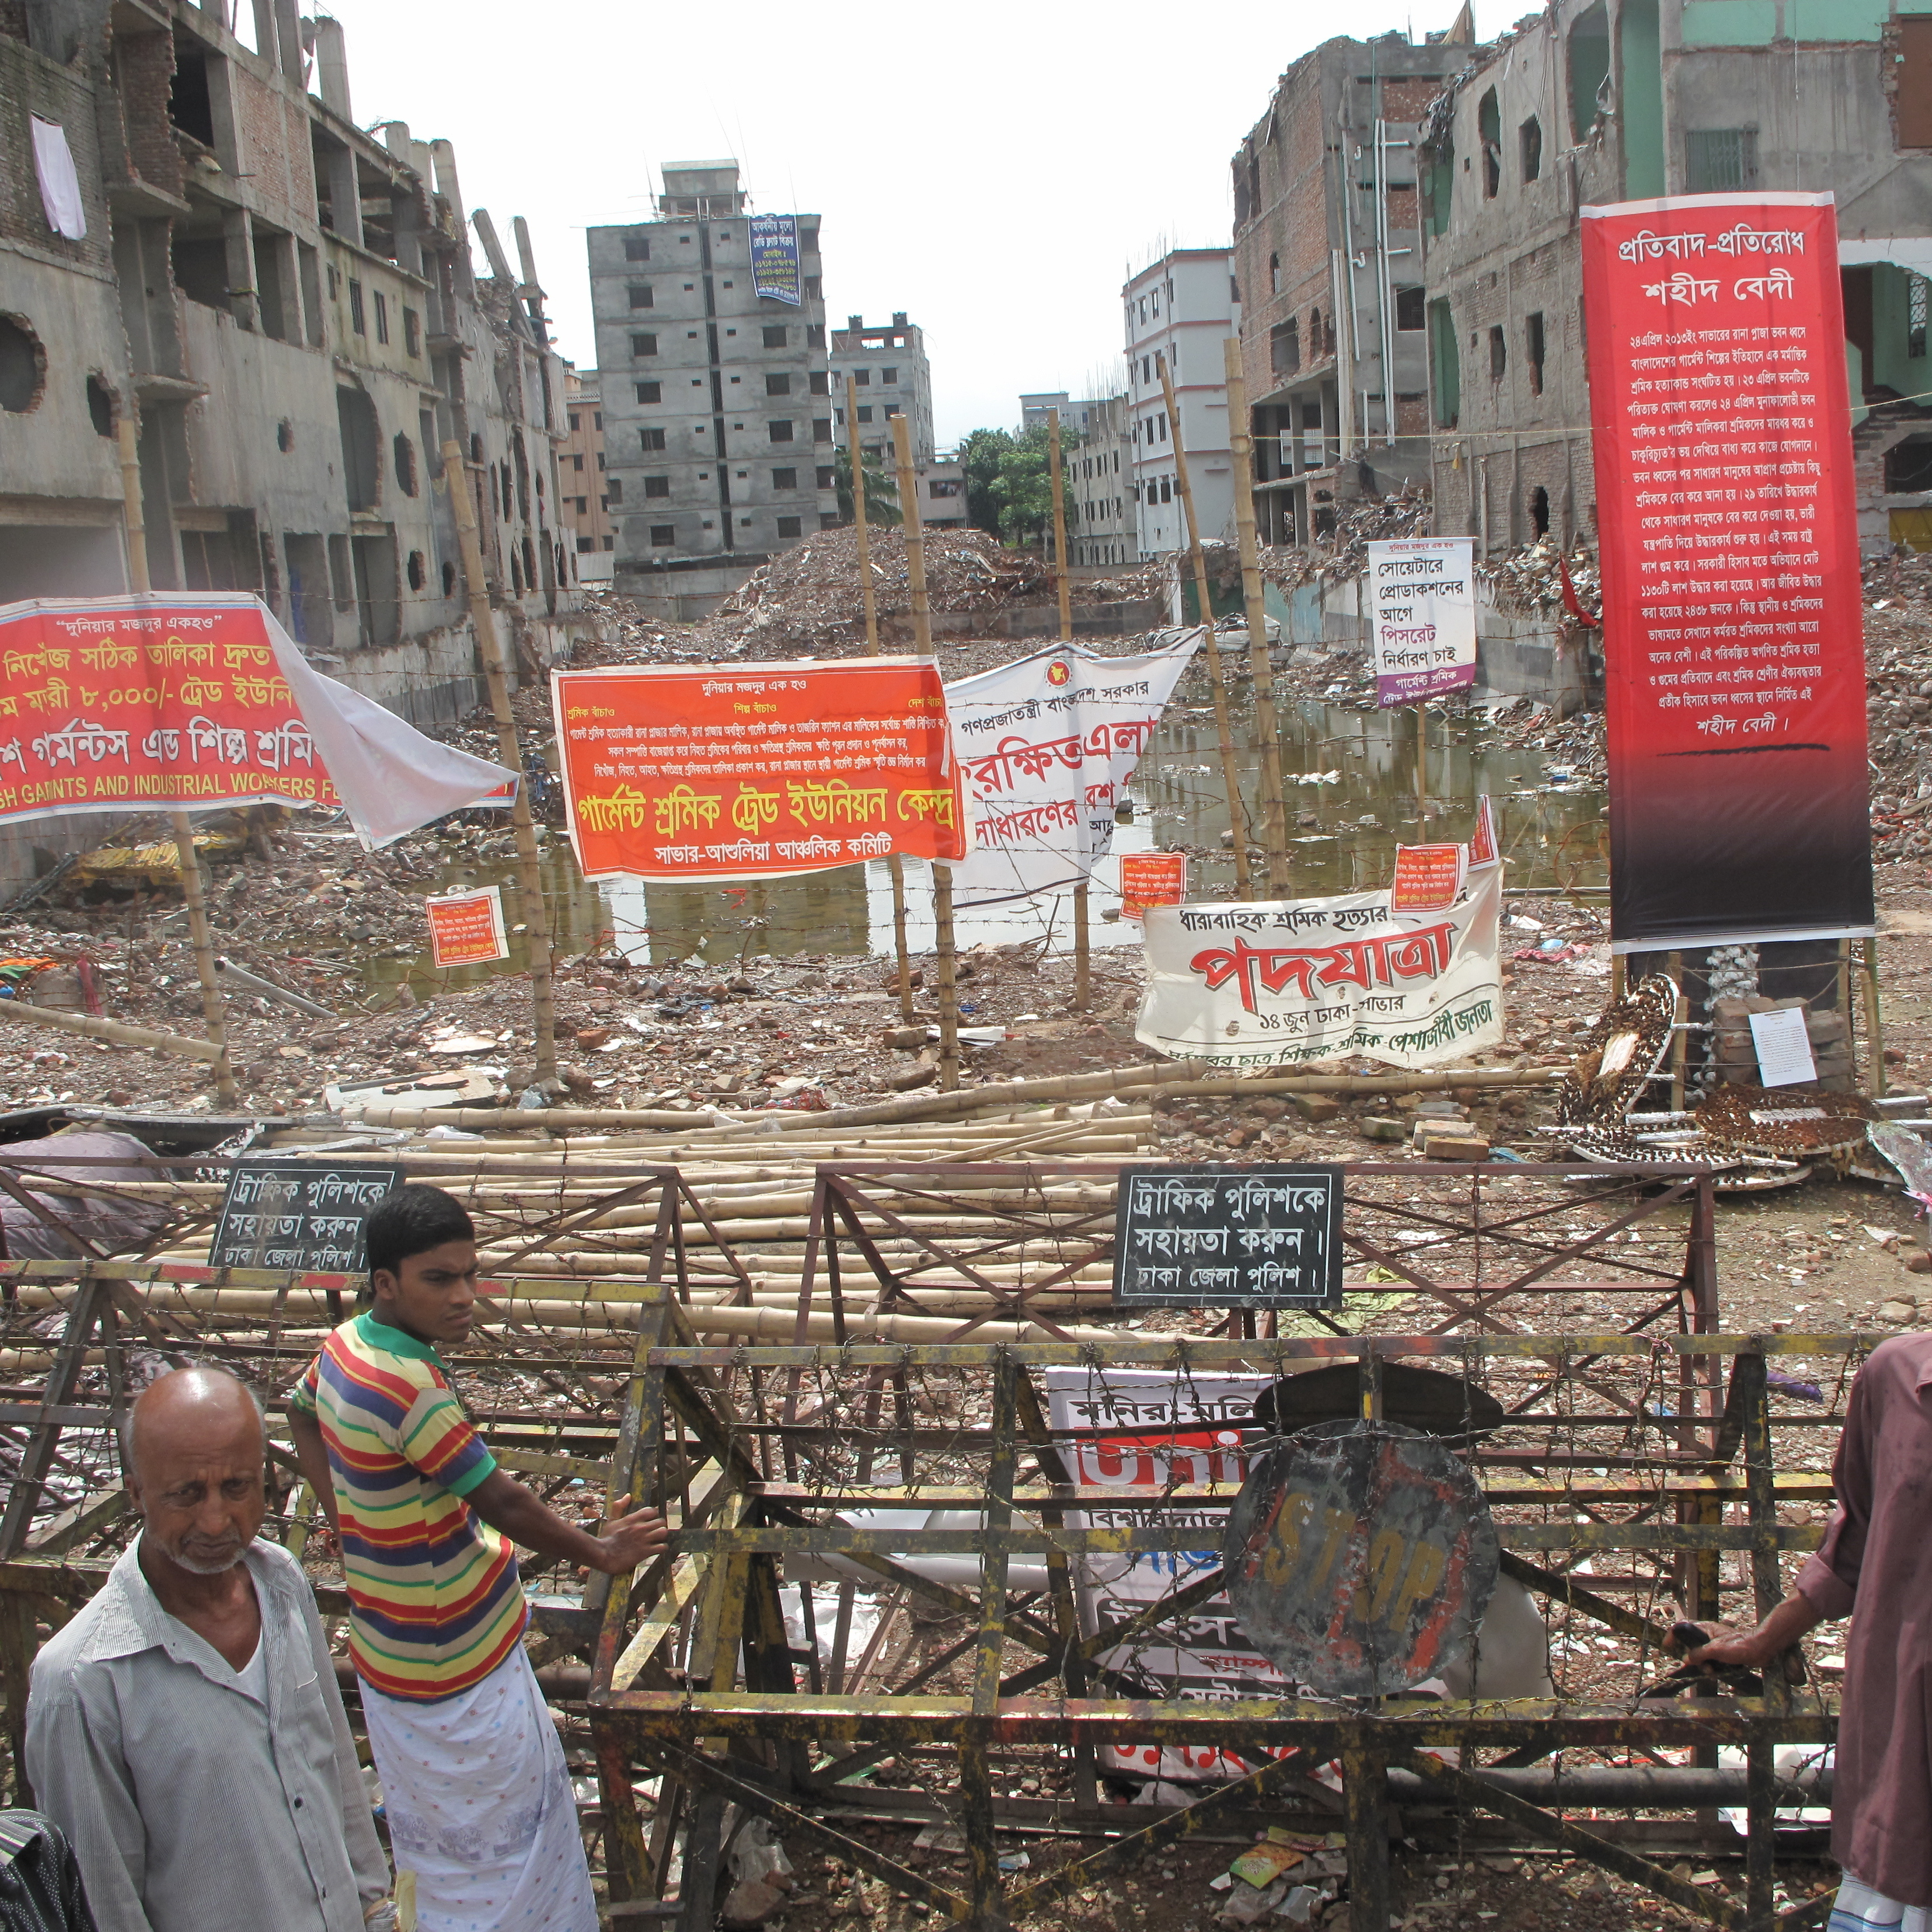 The gap between the buildings is where the Rana Plaza stood until a few months ago. More than 1,000 people were killed when the building collapsed April 24. It was the worst disaster in the garment industry's history.